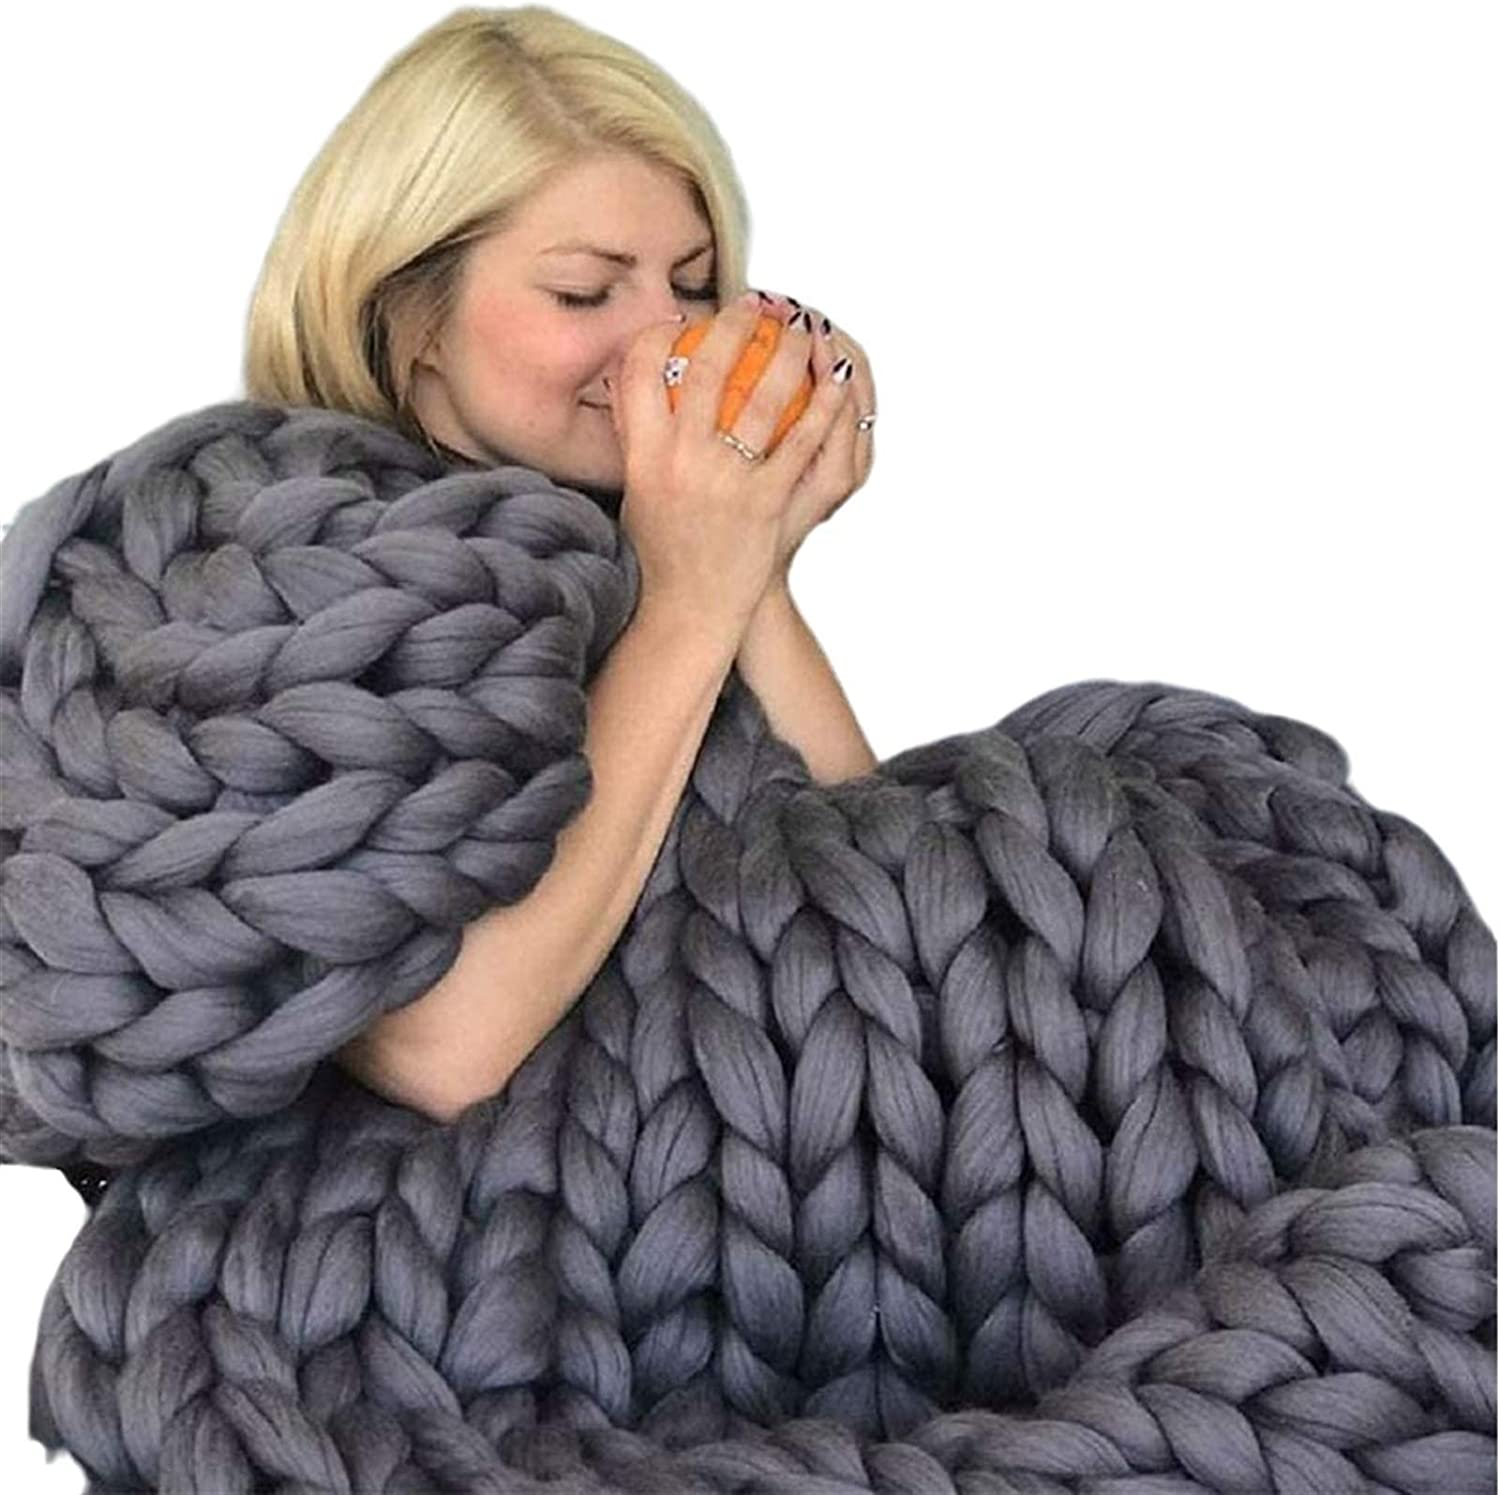 YXYH Handmade Thick Chunky Knit Challenge the lowest price of Japan Thr Max 53% OFF Knitting Blanket Bulky Large